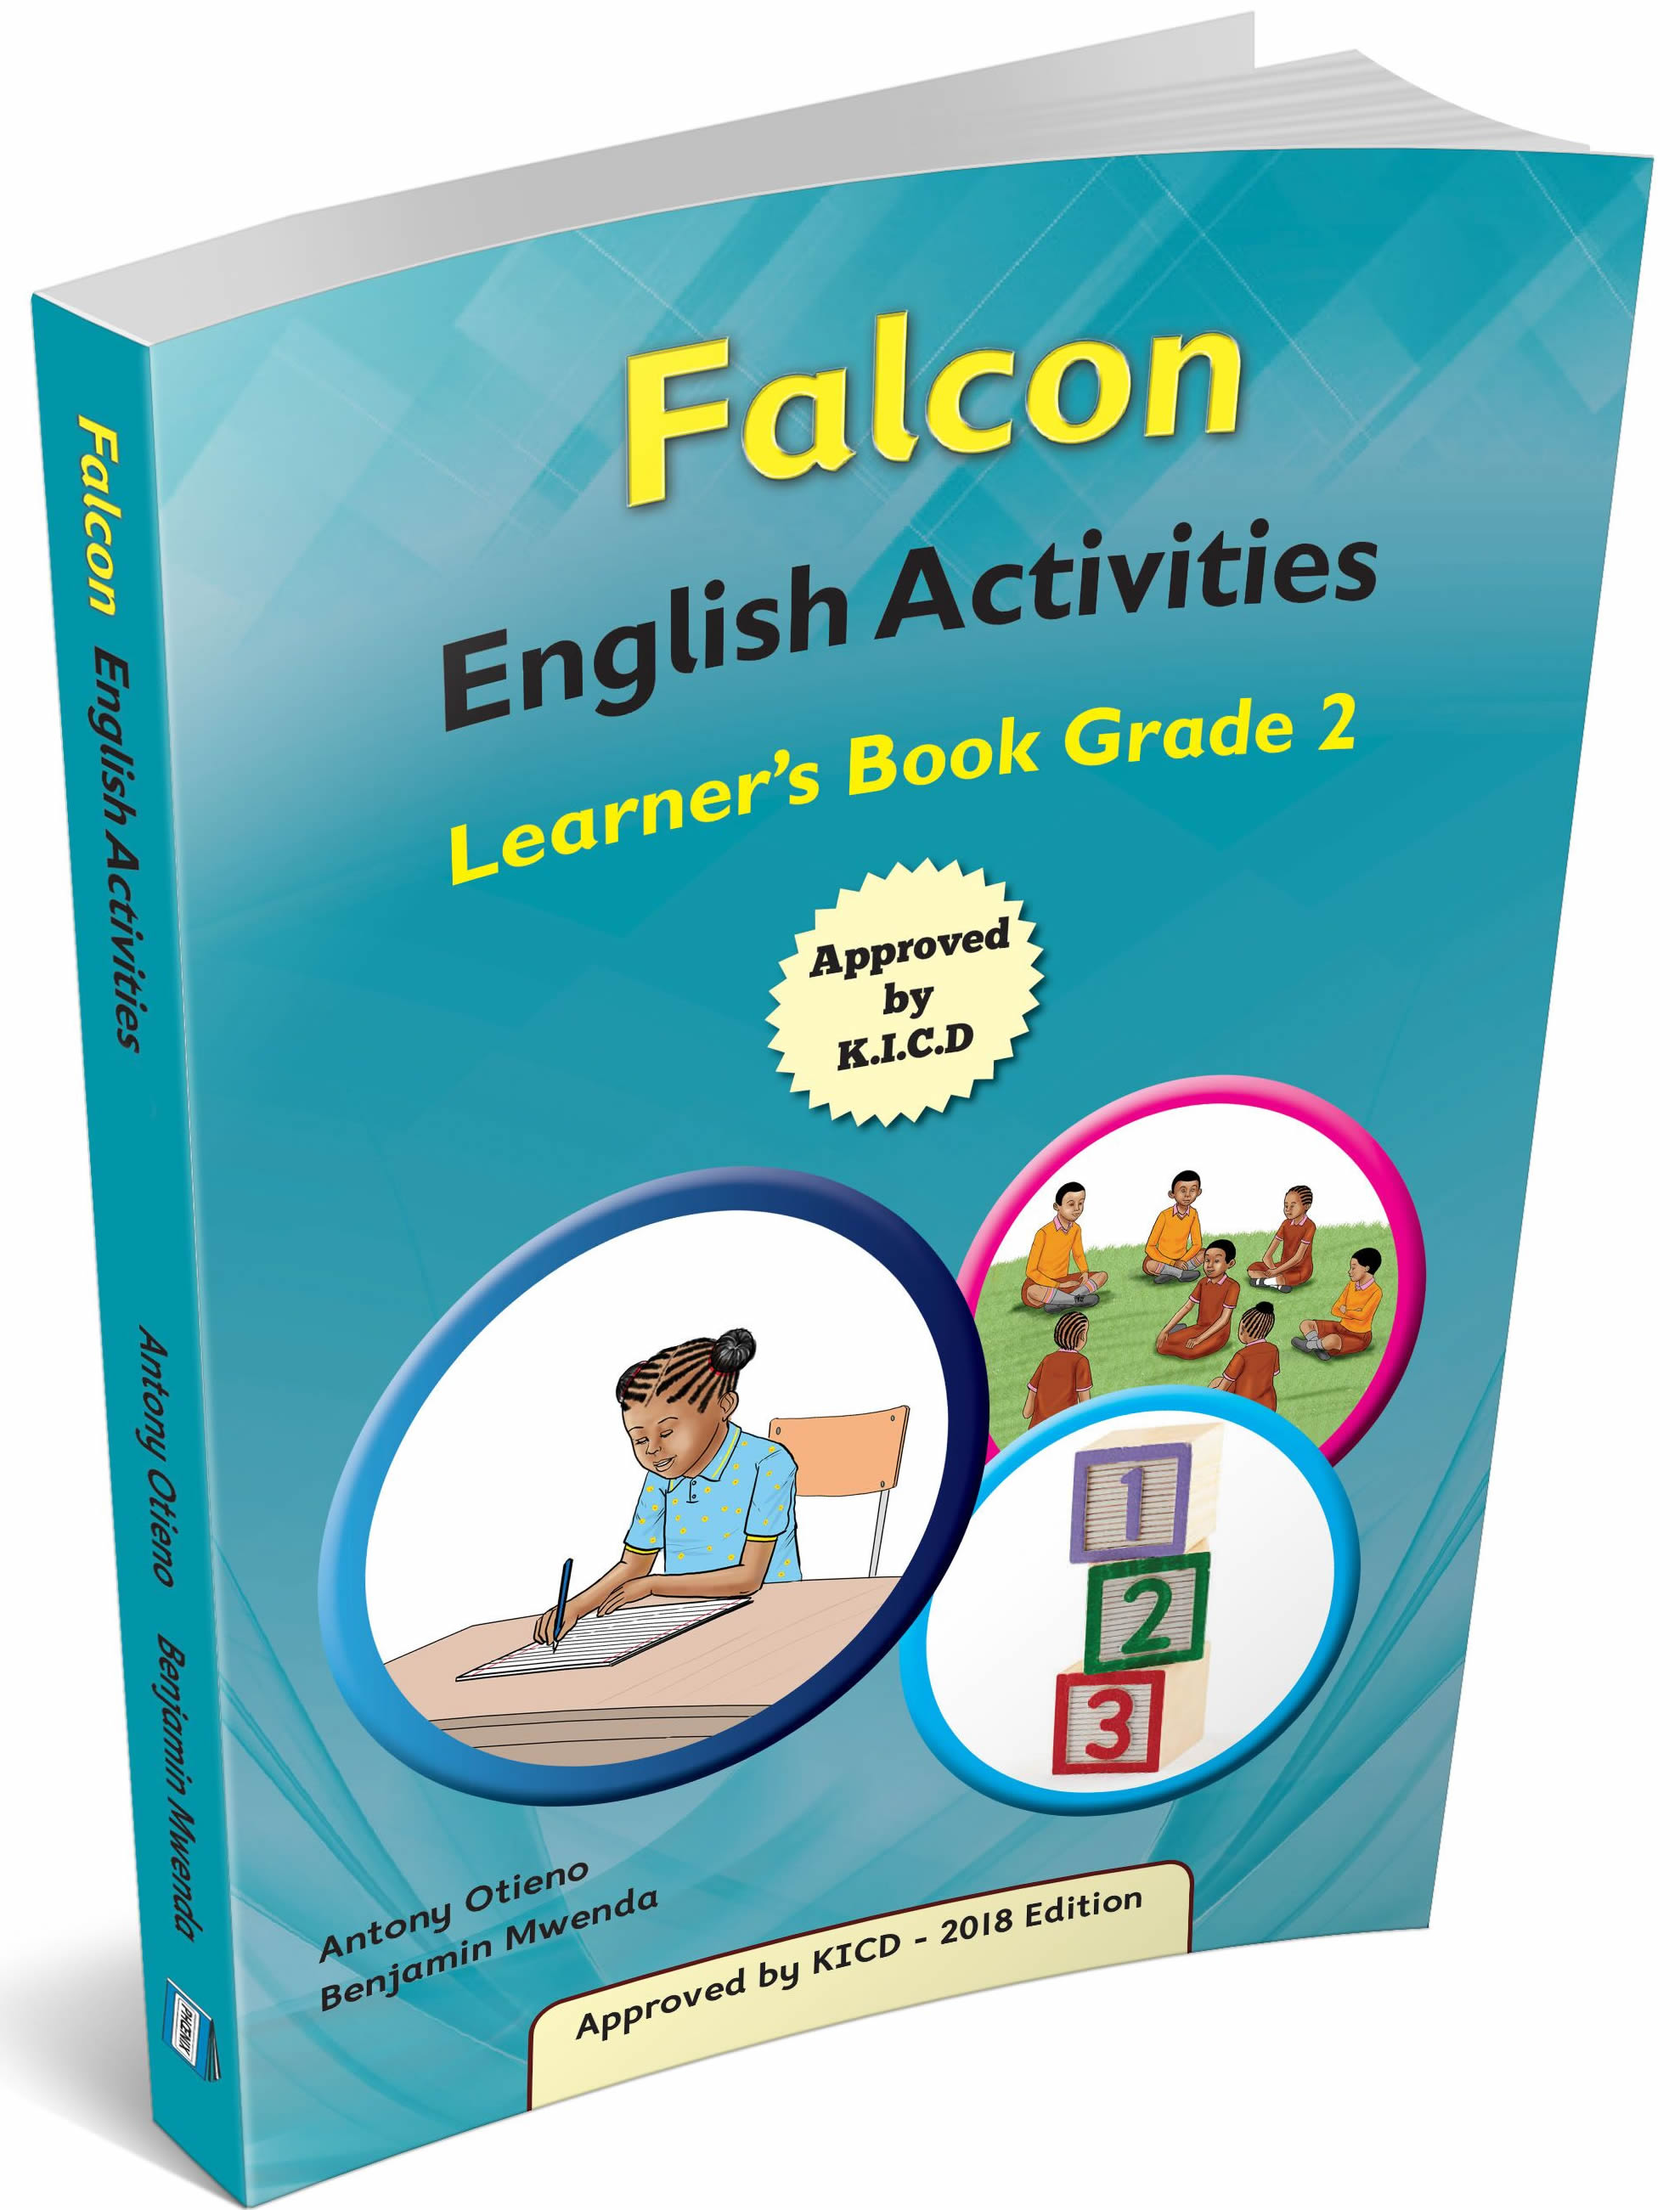 Falcon English Activities Lerner's Book Grade 2